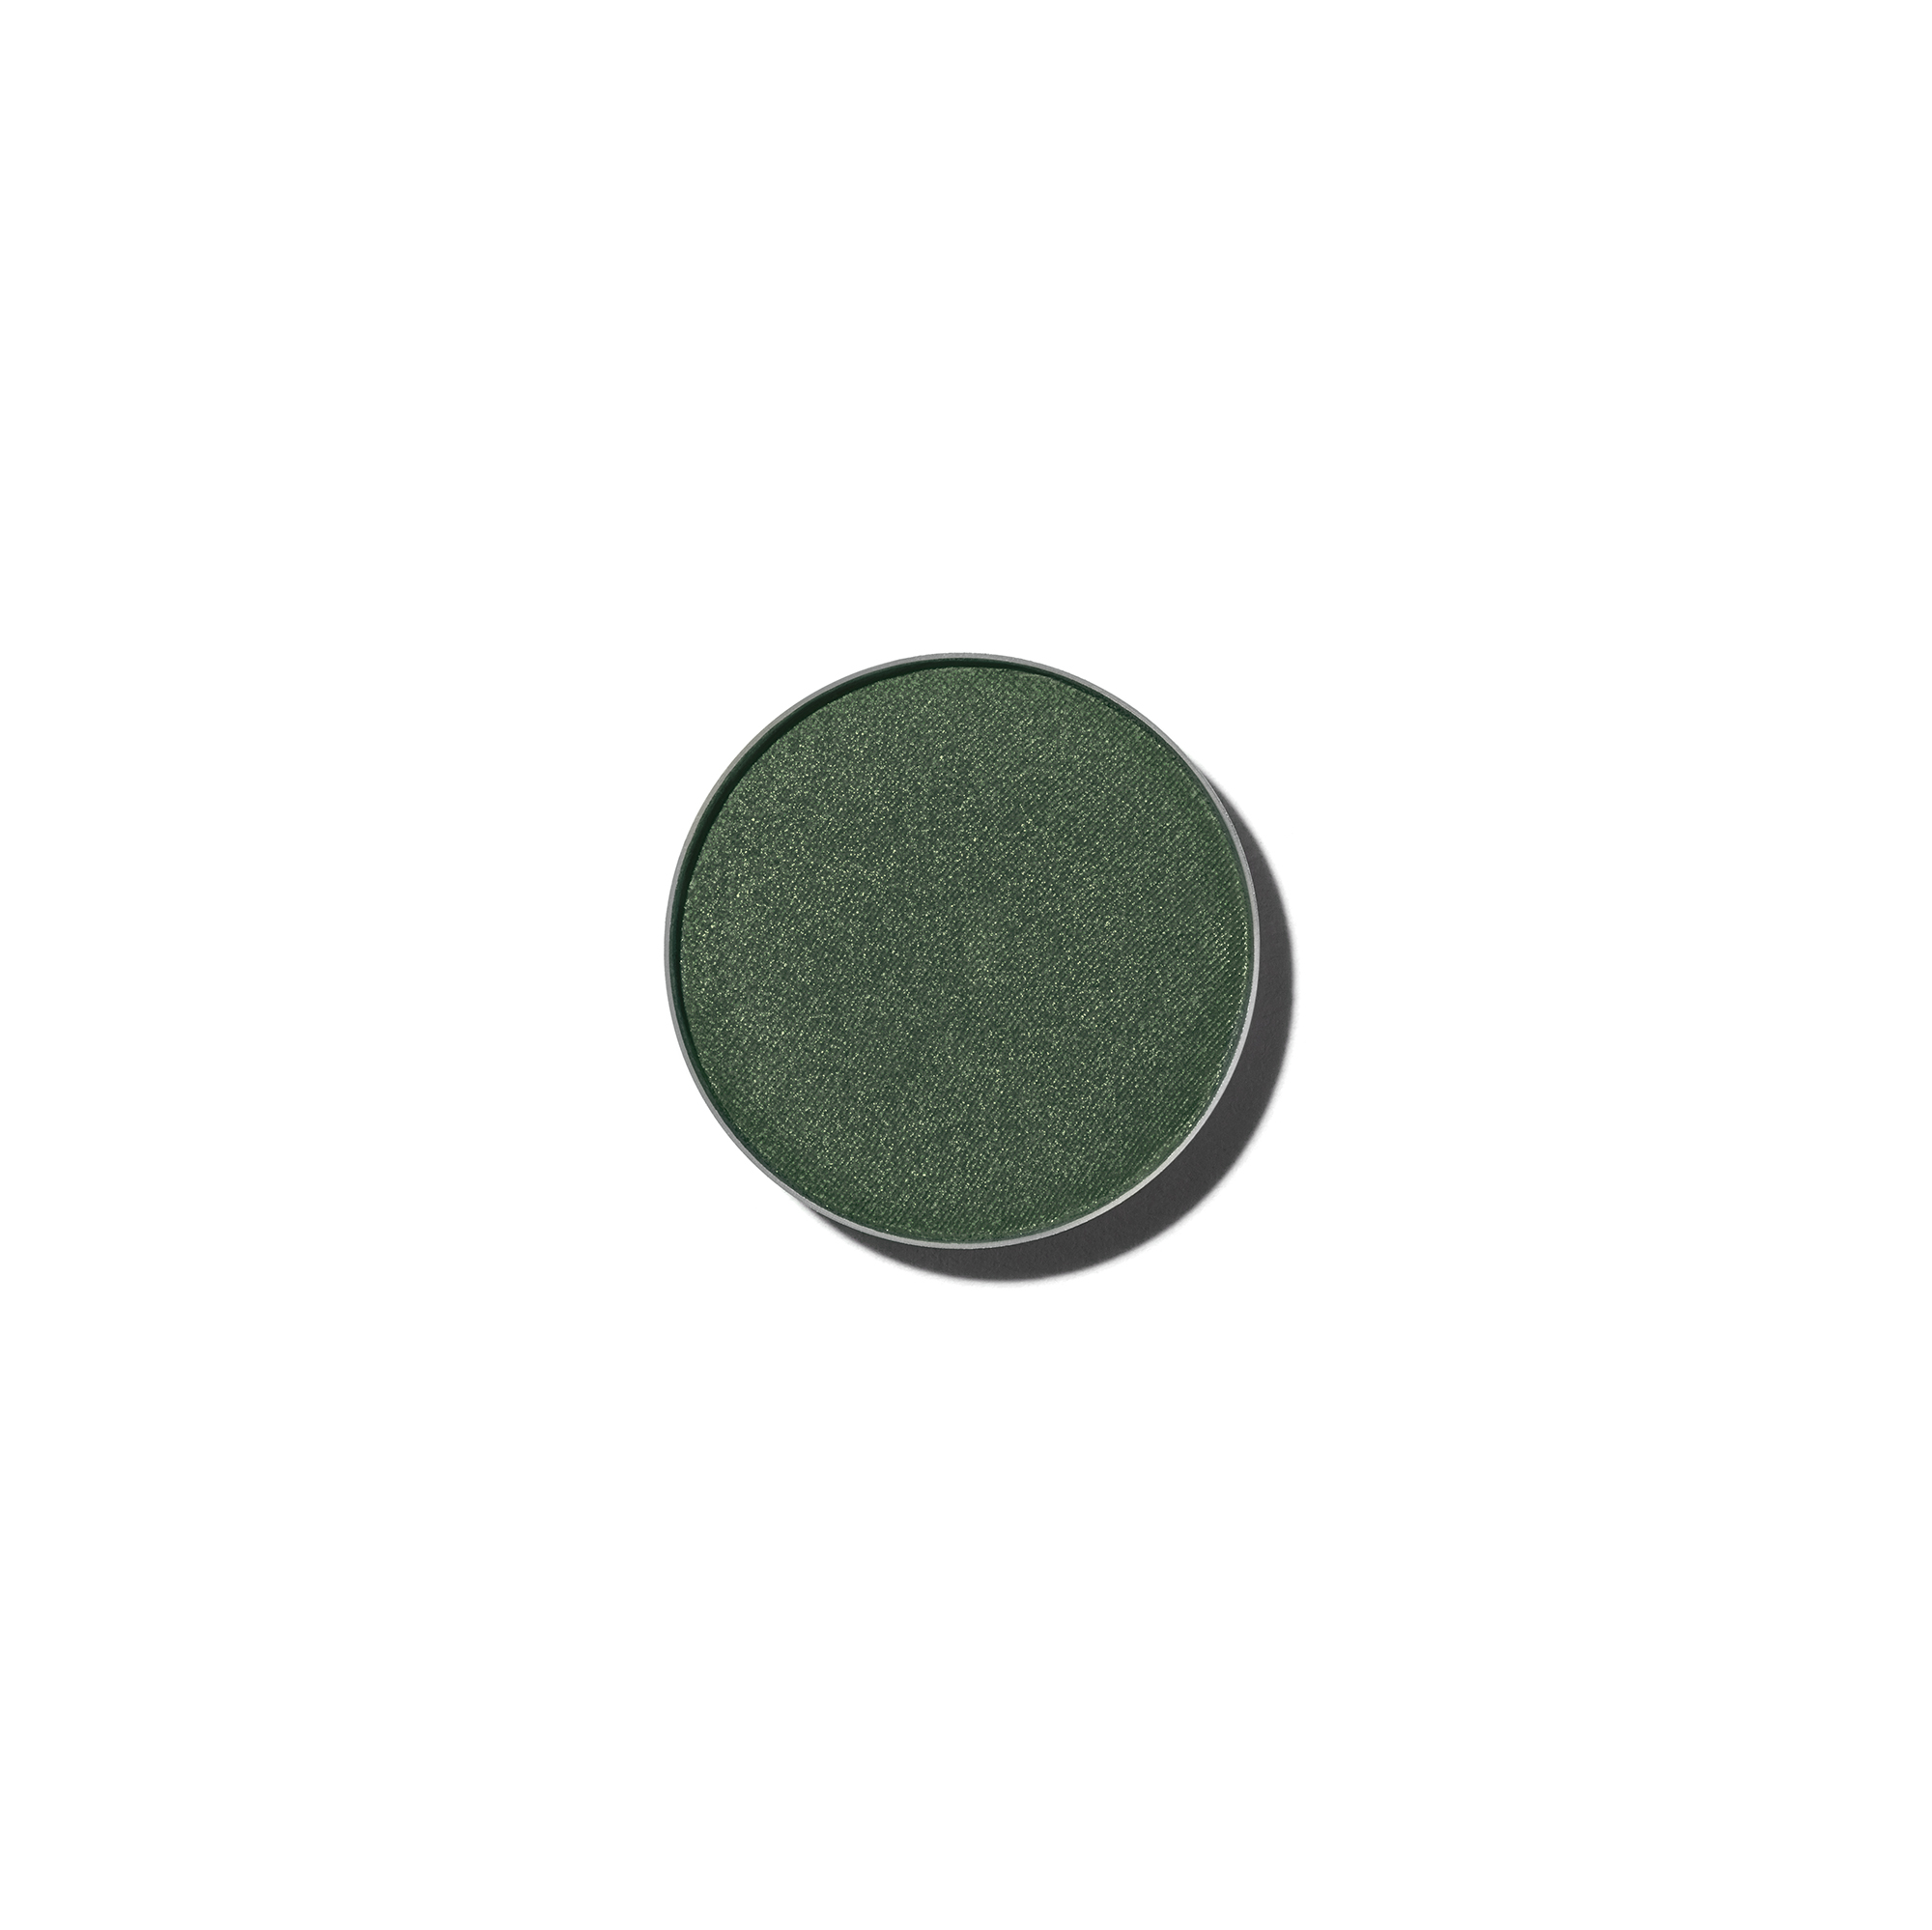 Eyeshadow Singles - Emerald